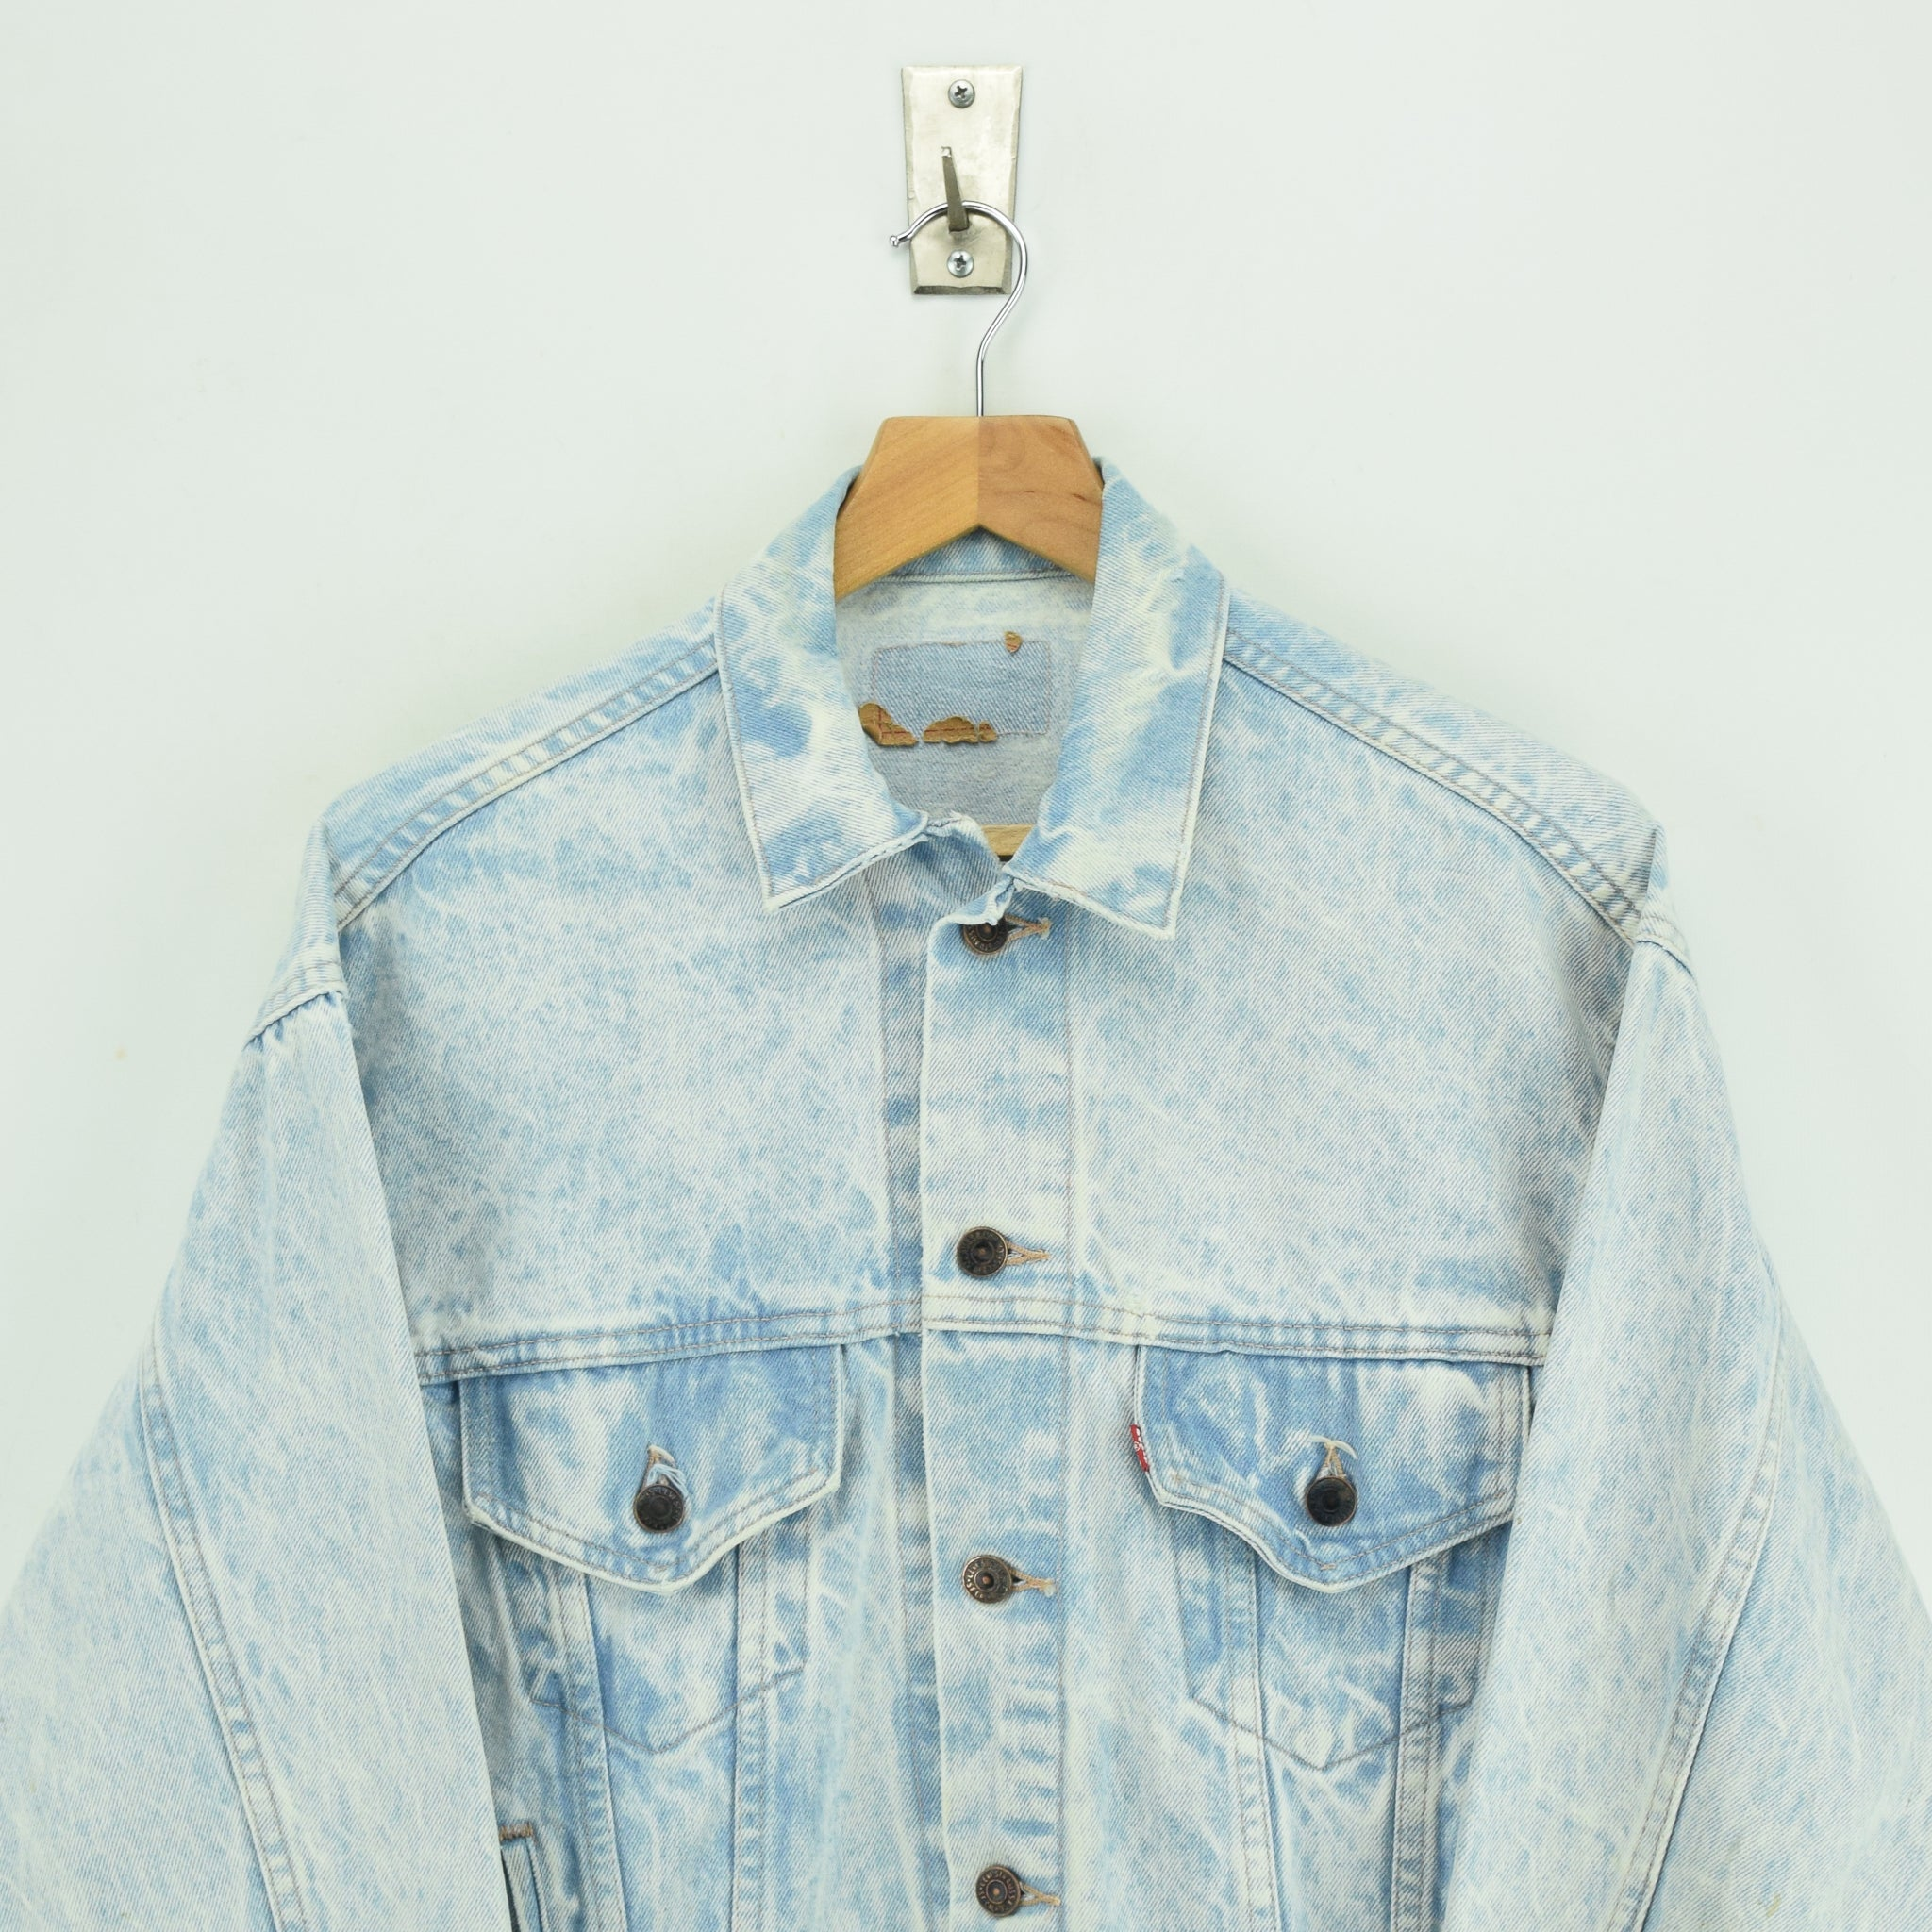 Vintage Levi Red Tab Bleached Blue Denim Trucker Jacket Made in USA S chest